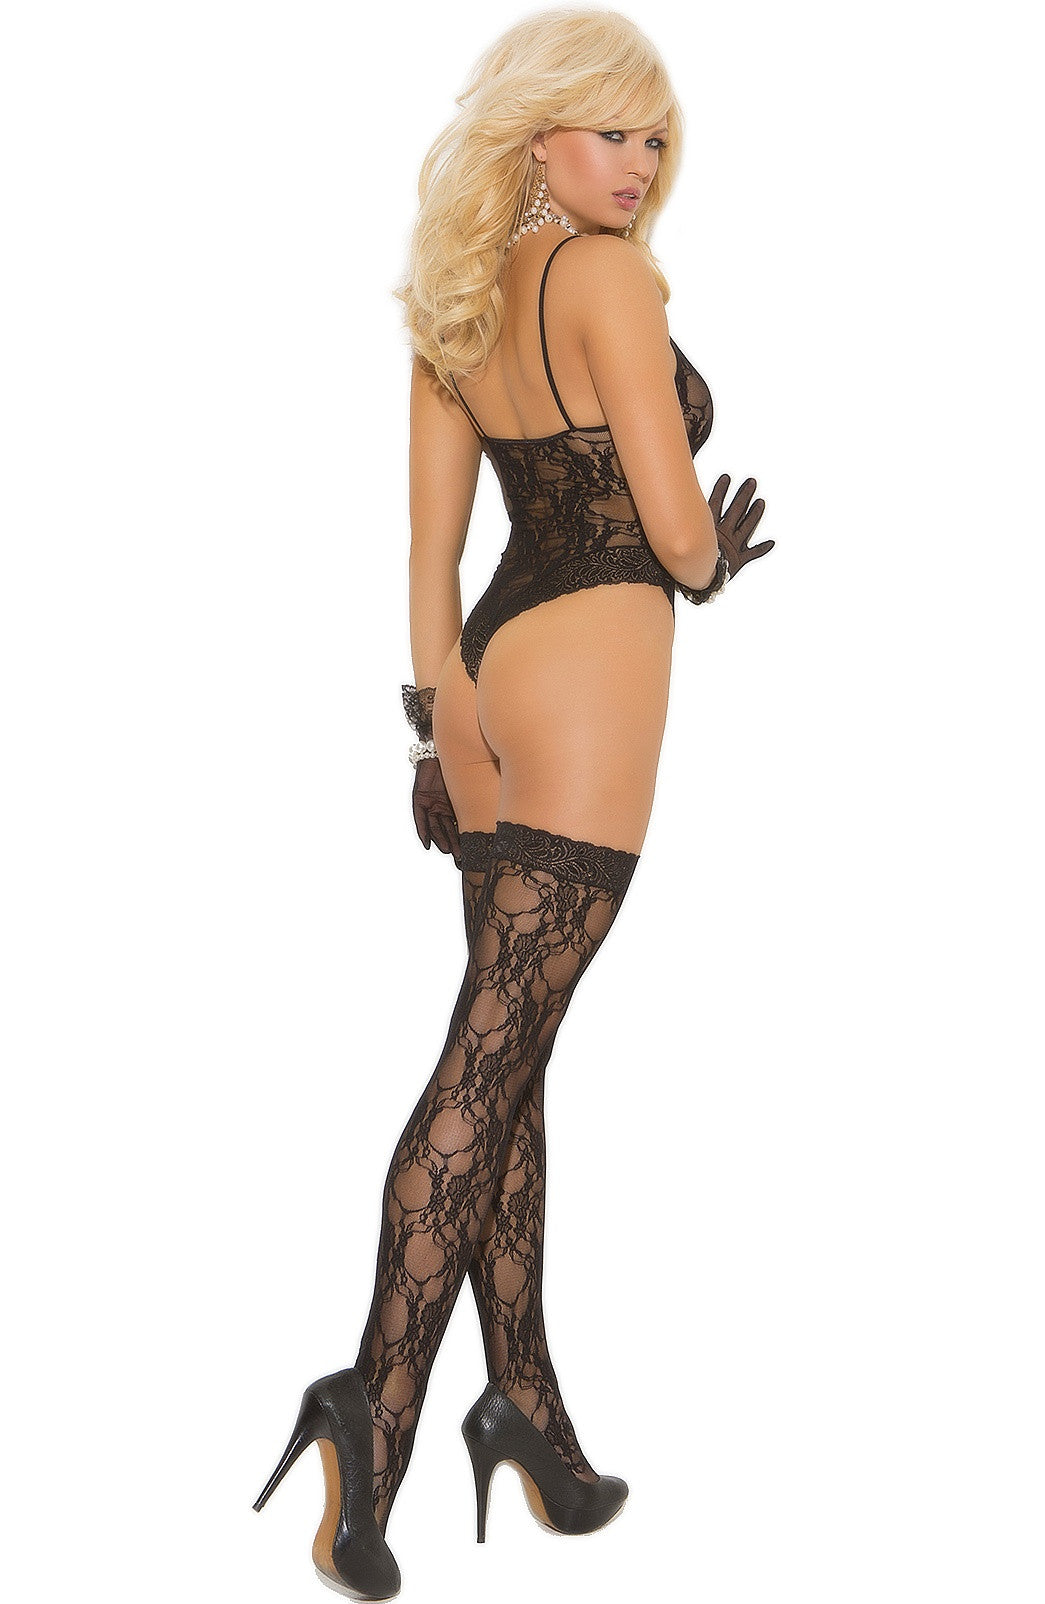 EM-1541 Lace teddy + stockings - Sexylingerieland